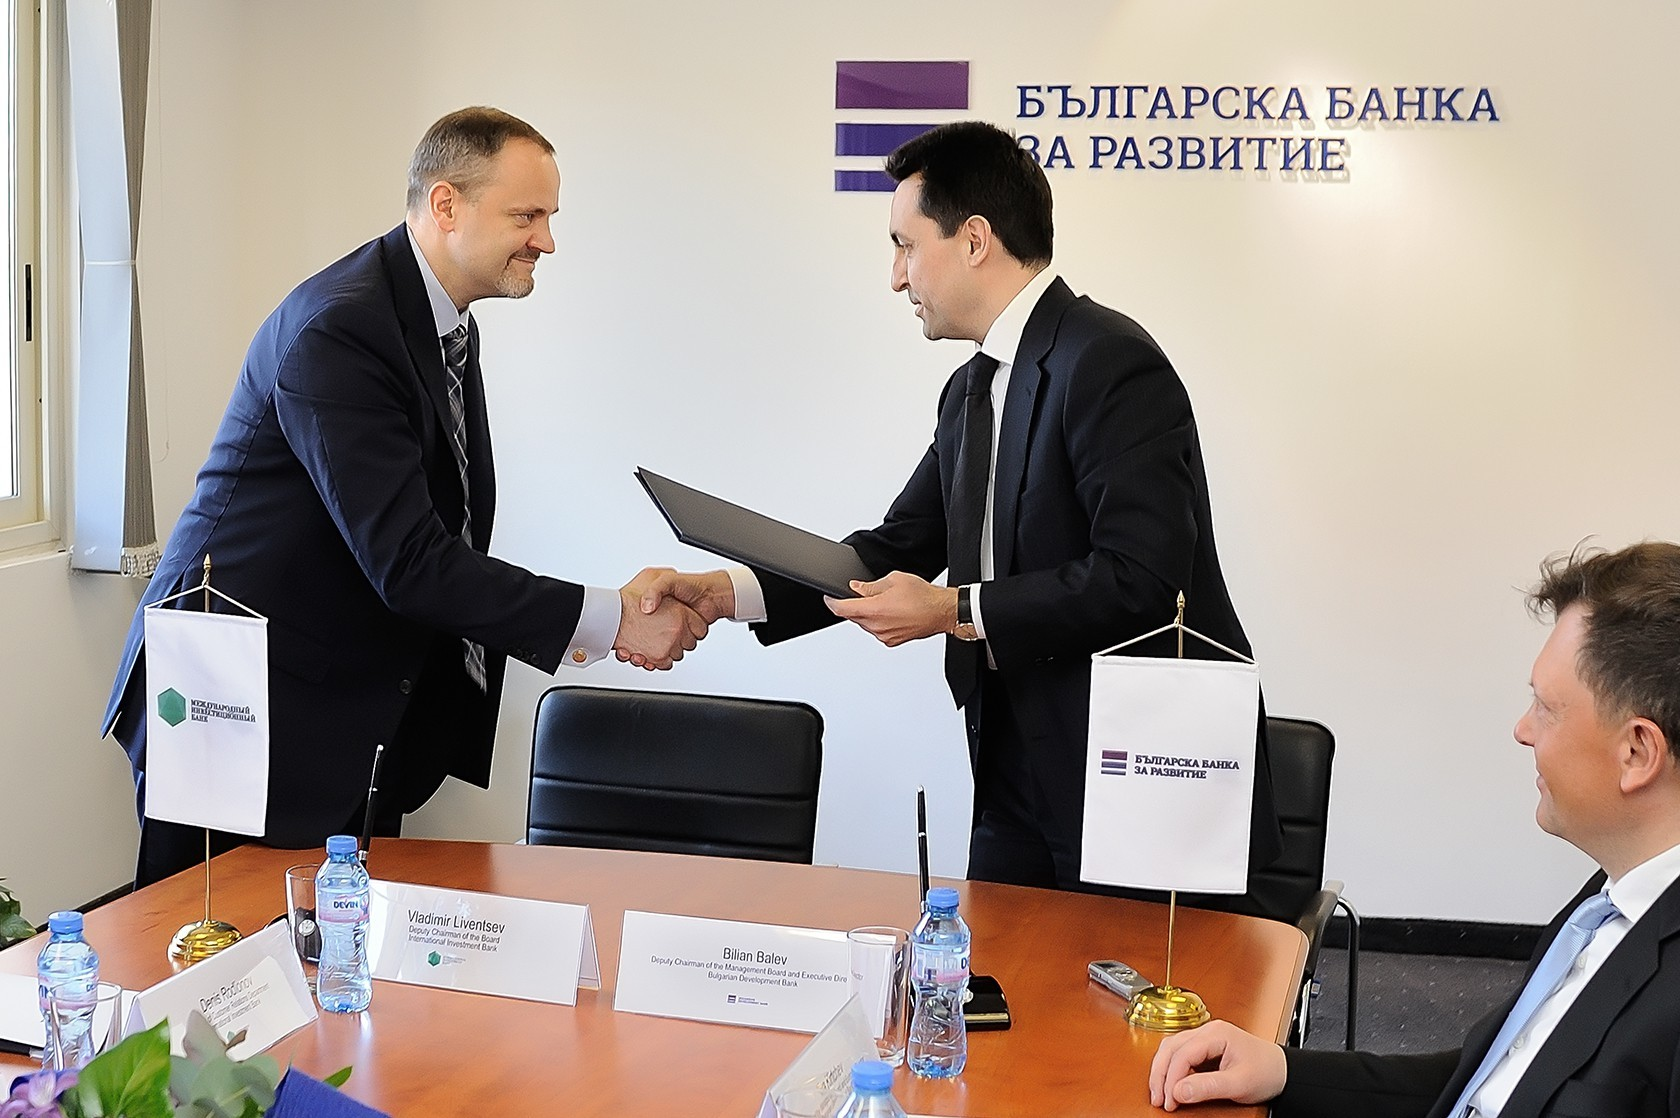 International Investment Bank and Bulgarian Development Bank are to jointly finance business projects